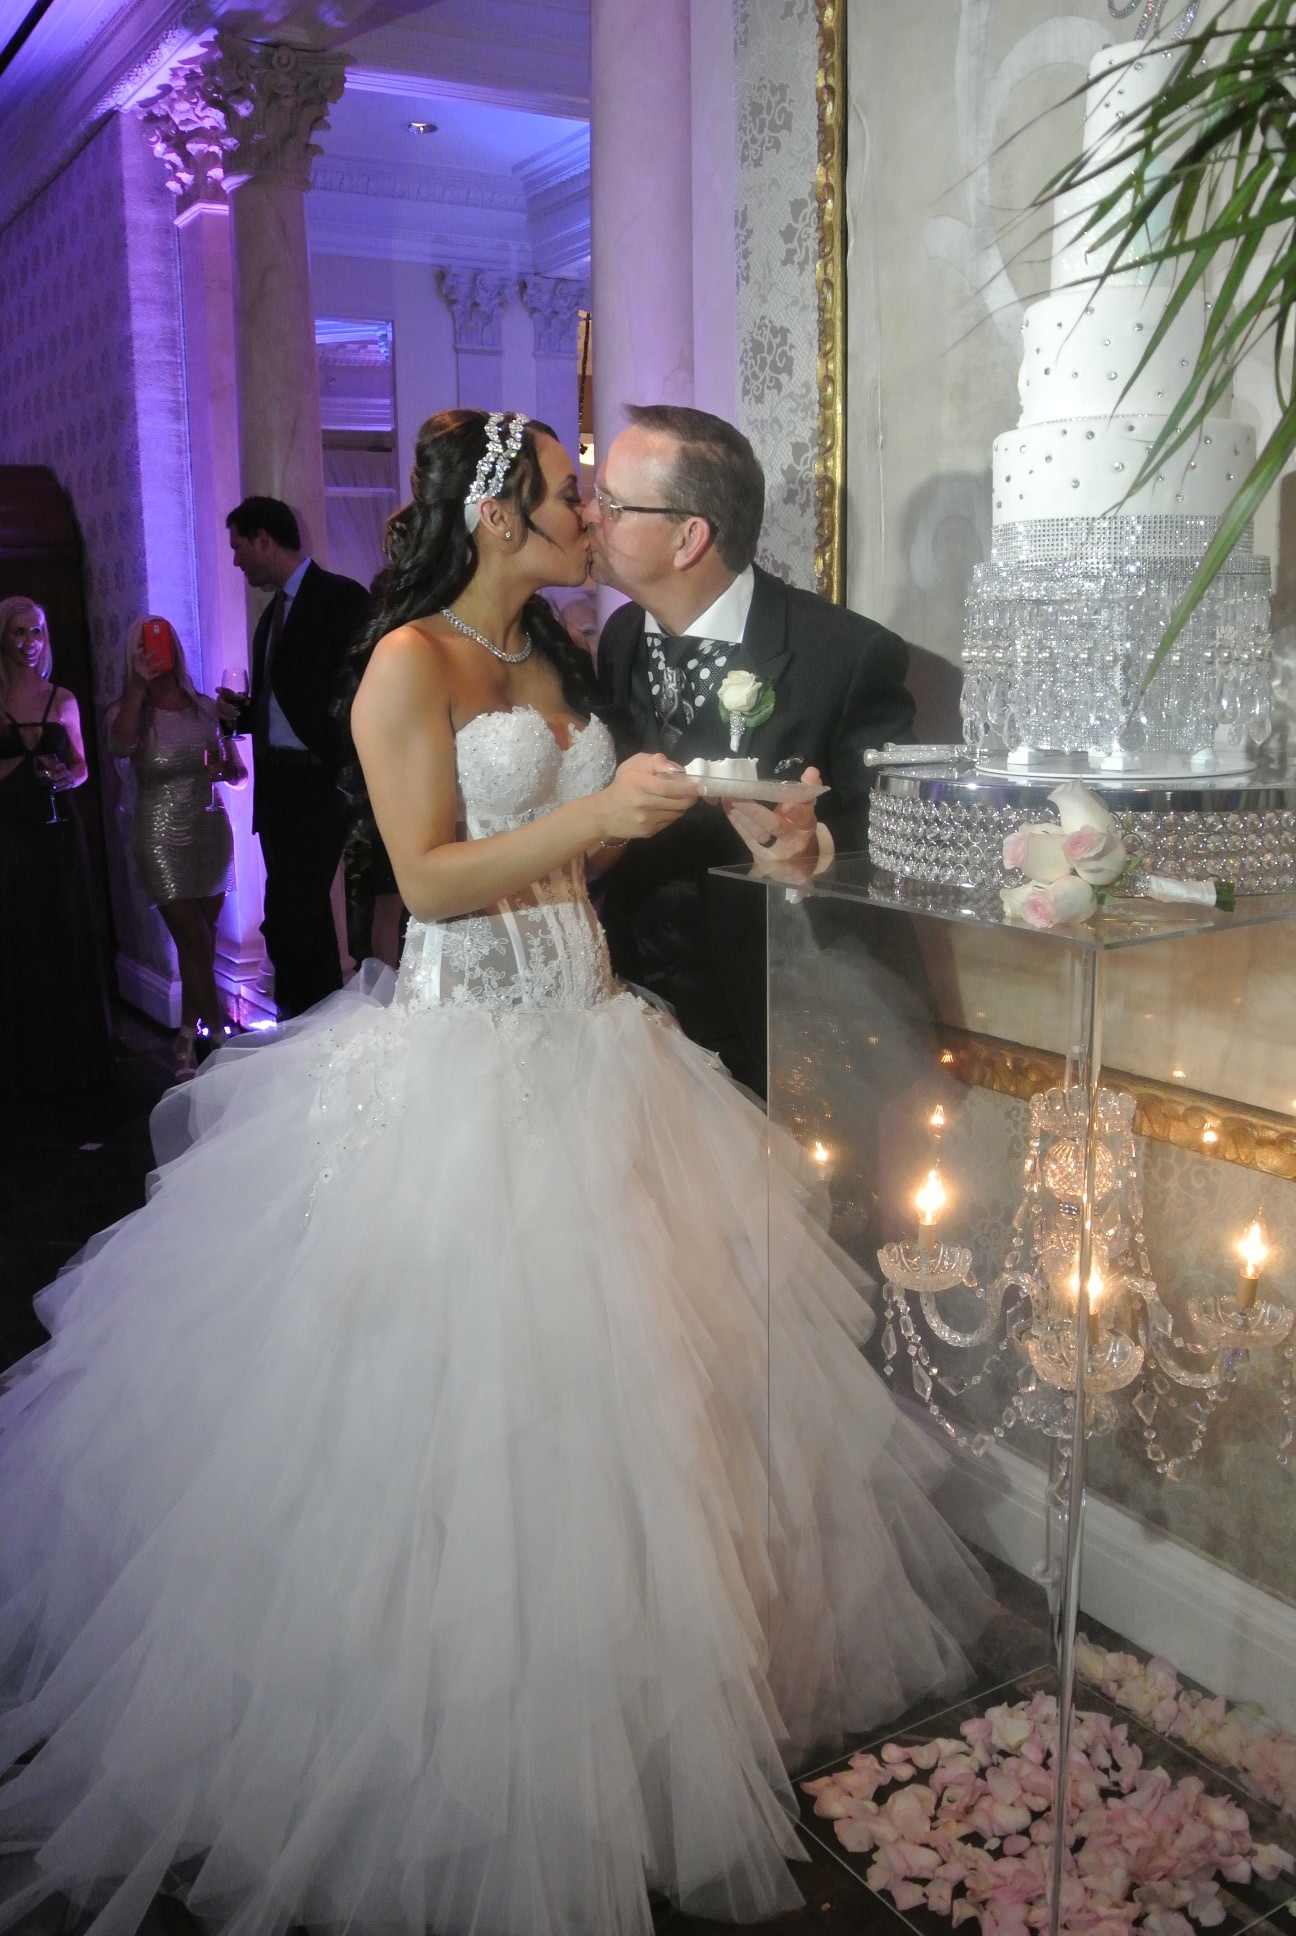 Cake Cutting and Kisses.   Las Vegas Wedding Planner:  Andrea Eppolito Events  | Las Vegas Wedding Venue:   Caesars Palace  | Floral and Decor:   Naakiti Floral & Sit On This  | Wedding Gown:  Pnina Torna  i | Wedding Cake: Peridot Sweets | Behind the Scenes Photos:   Andrea Eppolito